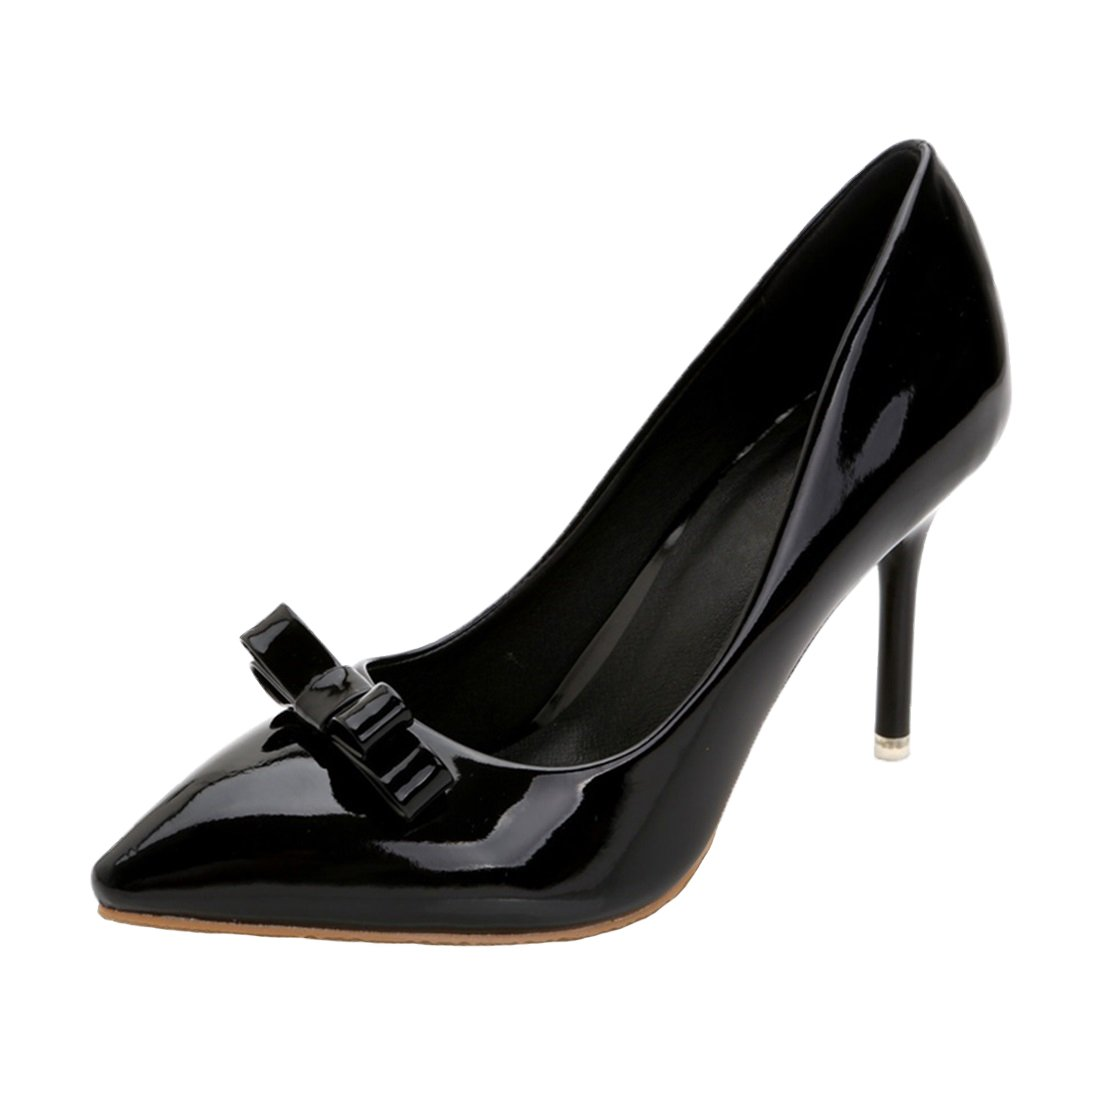 HooH Damen Lackleder Lackleder Lackleder Pointed Toe Bowknot Stiletto Abendschuhe Pumps Schwarz 96fed6